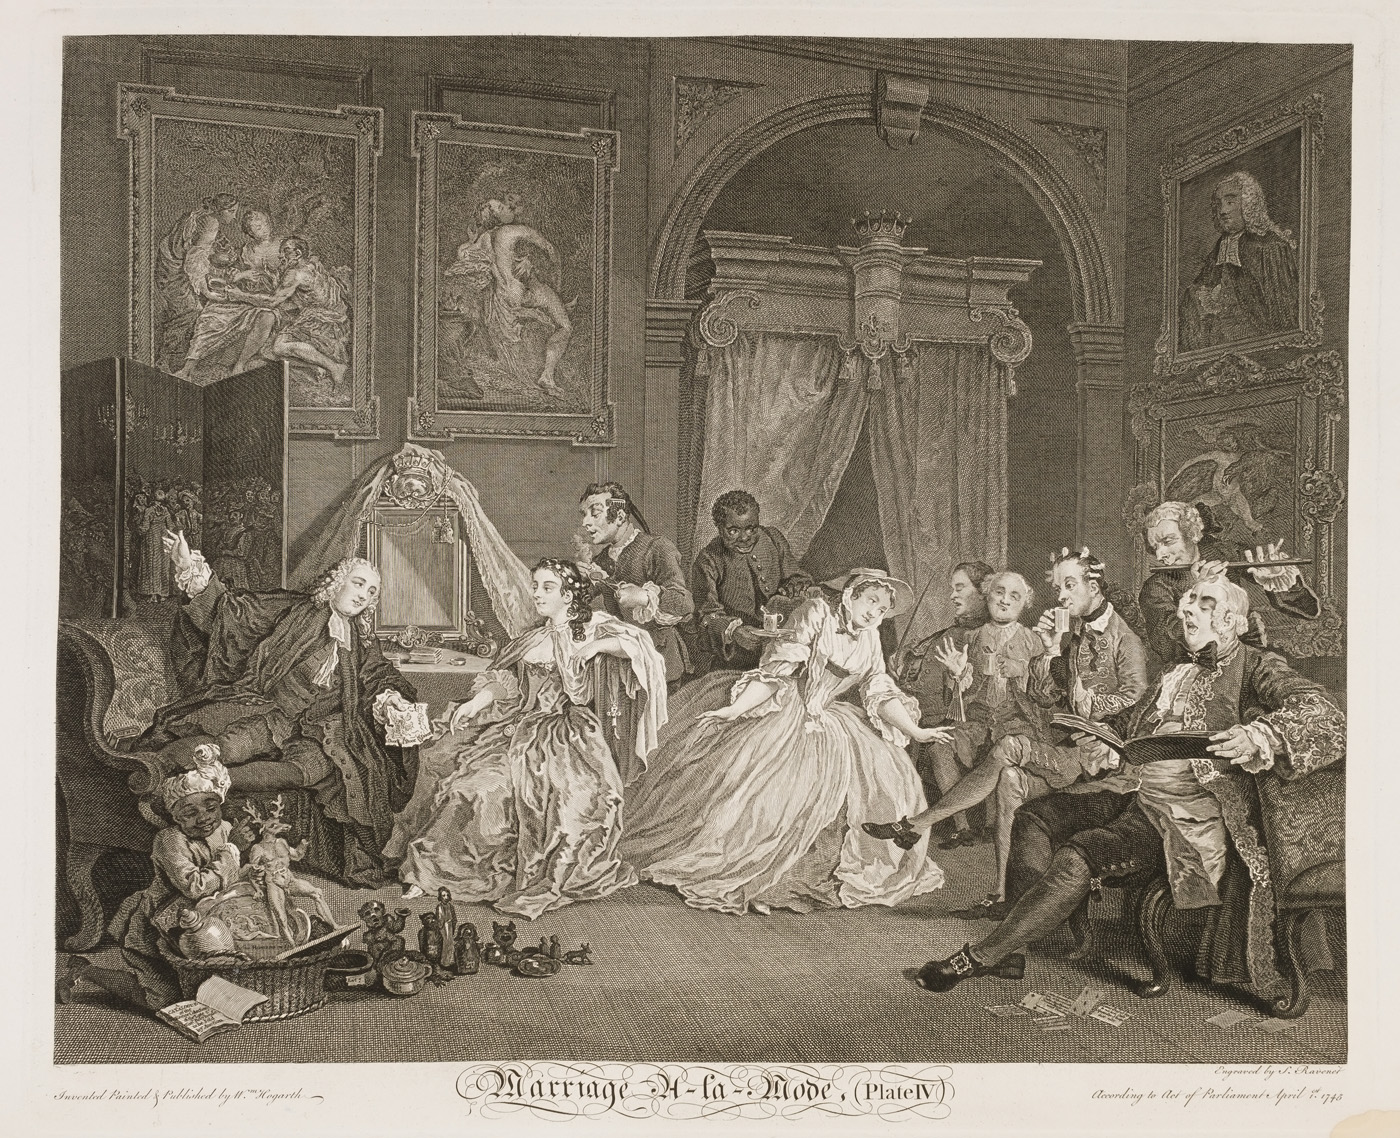 William Hogarth - Marriage à-la-mode plate 4